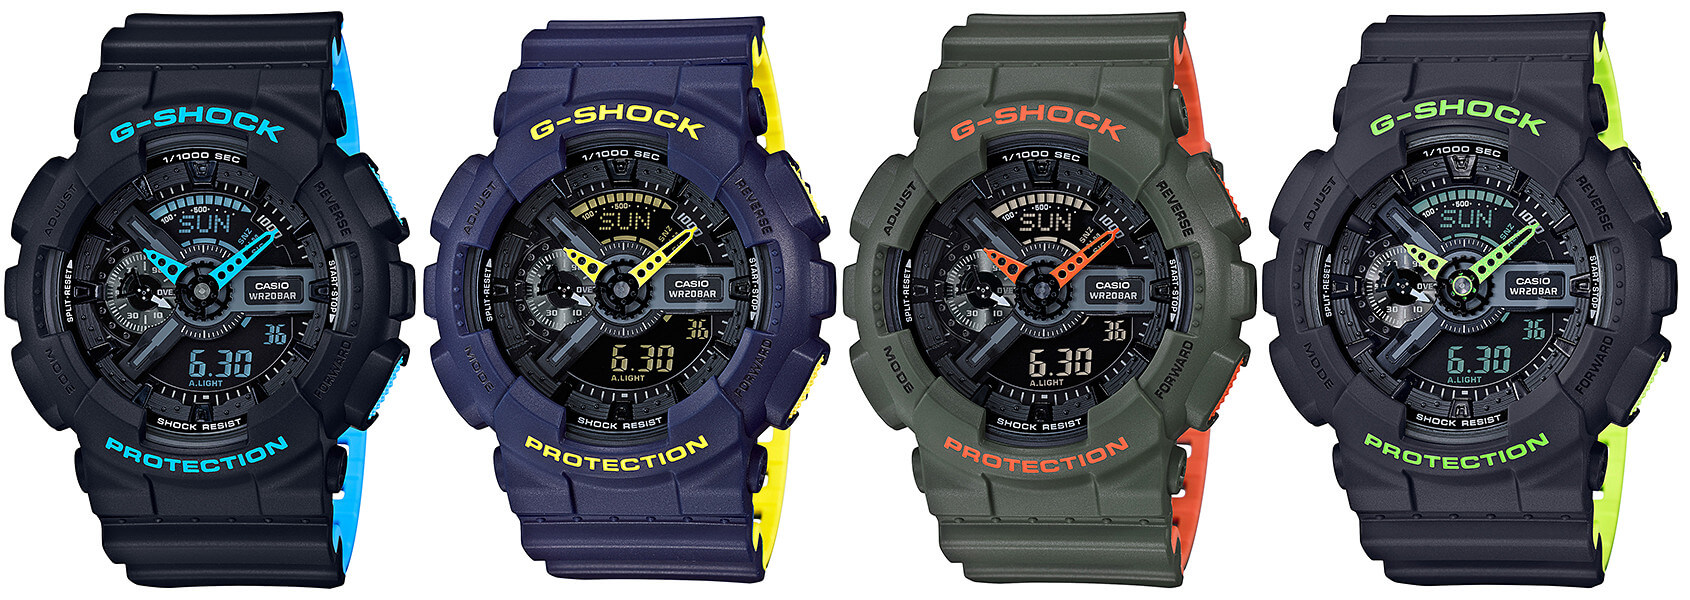 81d5f8050a8 G-Shock GA-110LN Layered Neon Color GA-110LN-1A GA-. Casio announced four  new watches for a ...